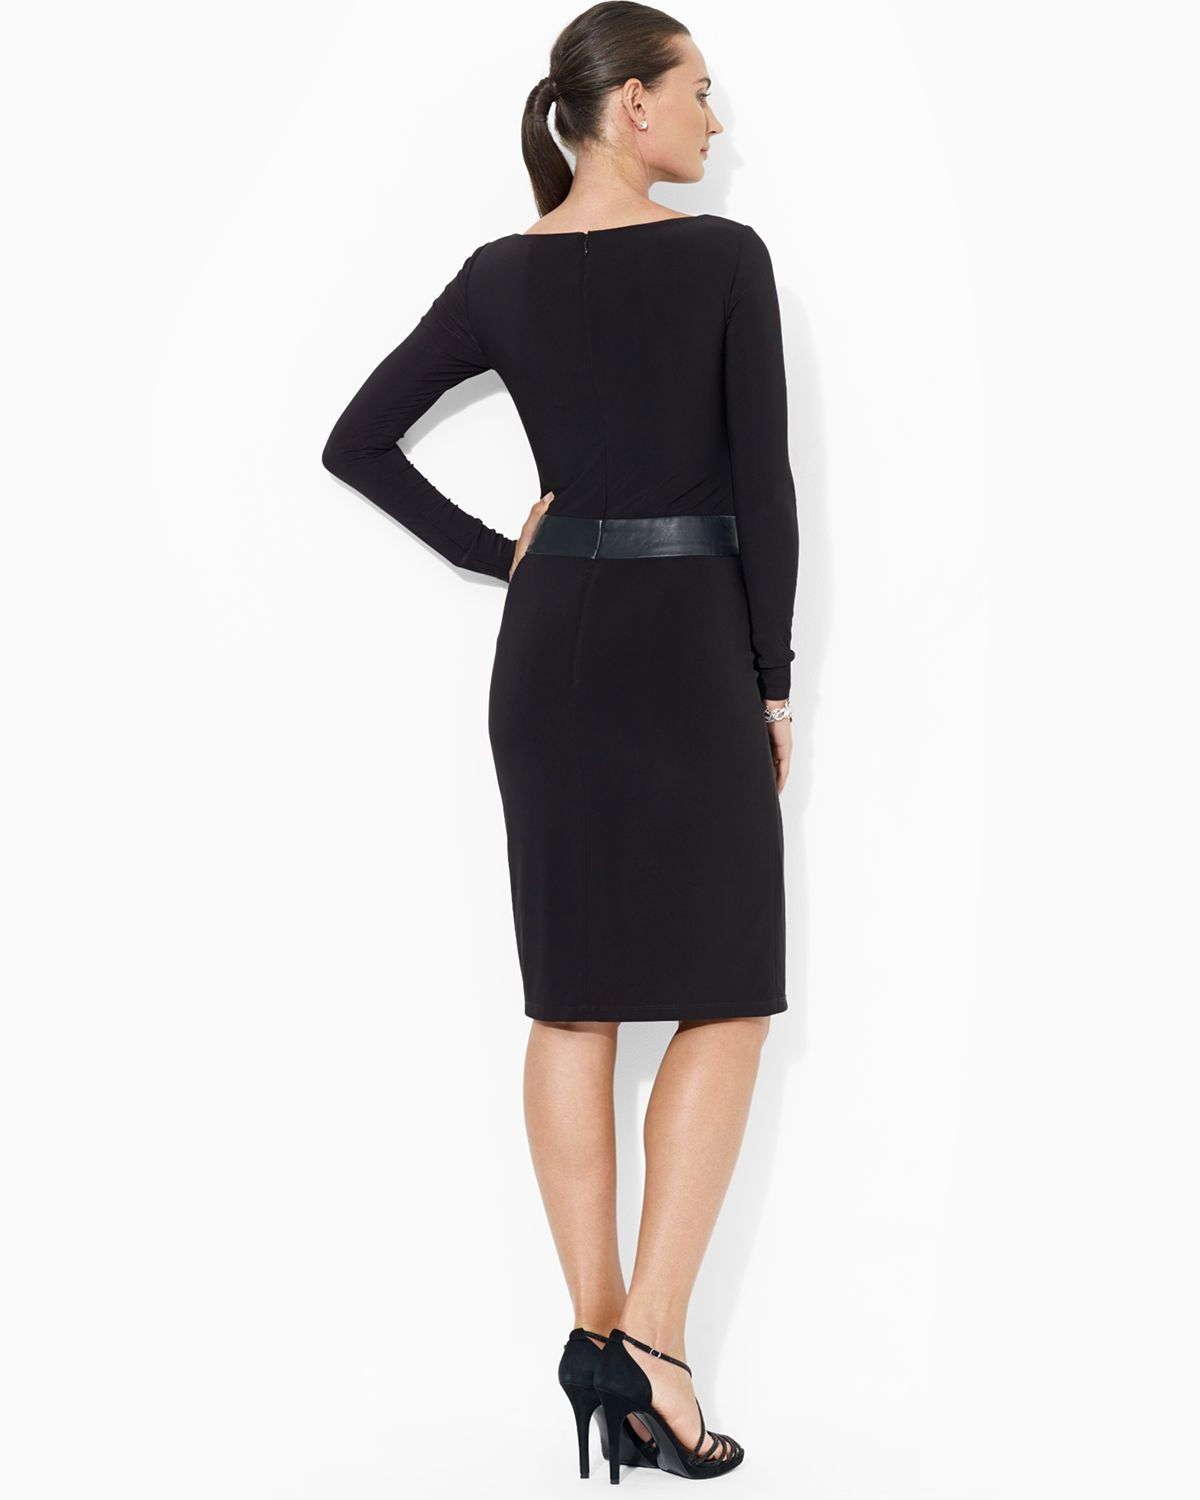 Lauren Ralph Lauren Väskor : Lyst ralph lauren dress faux leather matte jersey in black